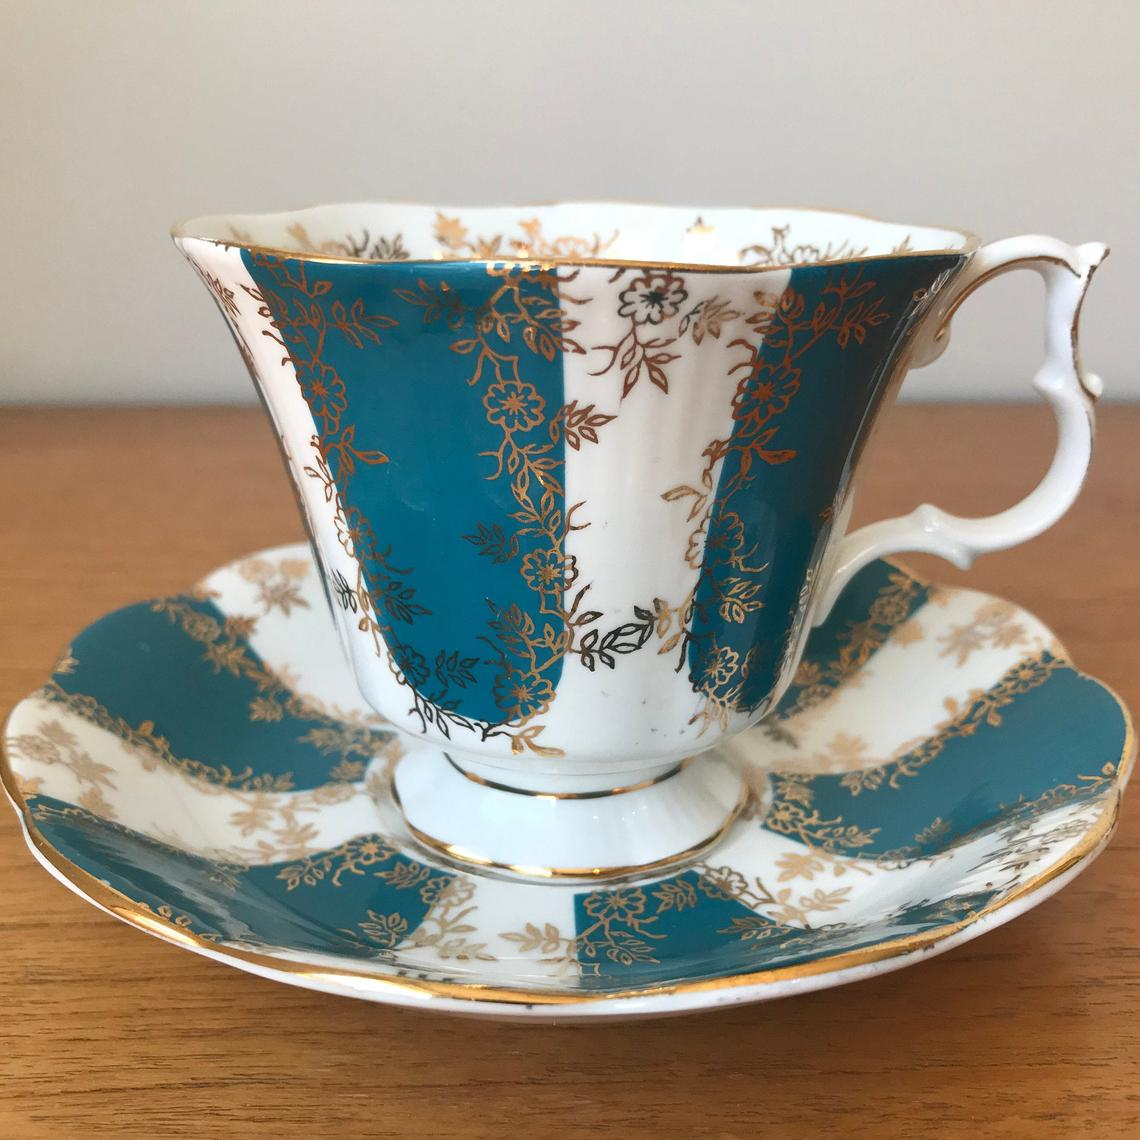 Royal Albert Stripes Tea Cup and Saucer, Turquoise and White Teacup and Saucer with Gold Flower Overlay